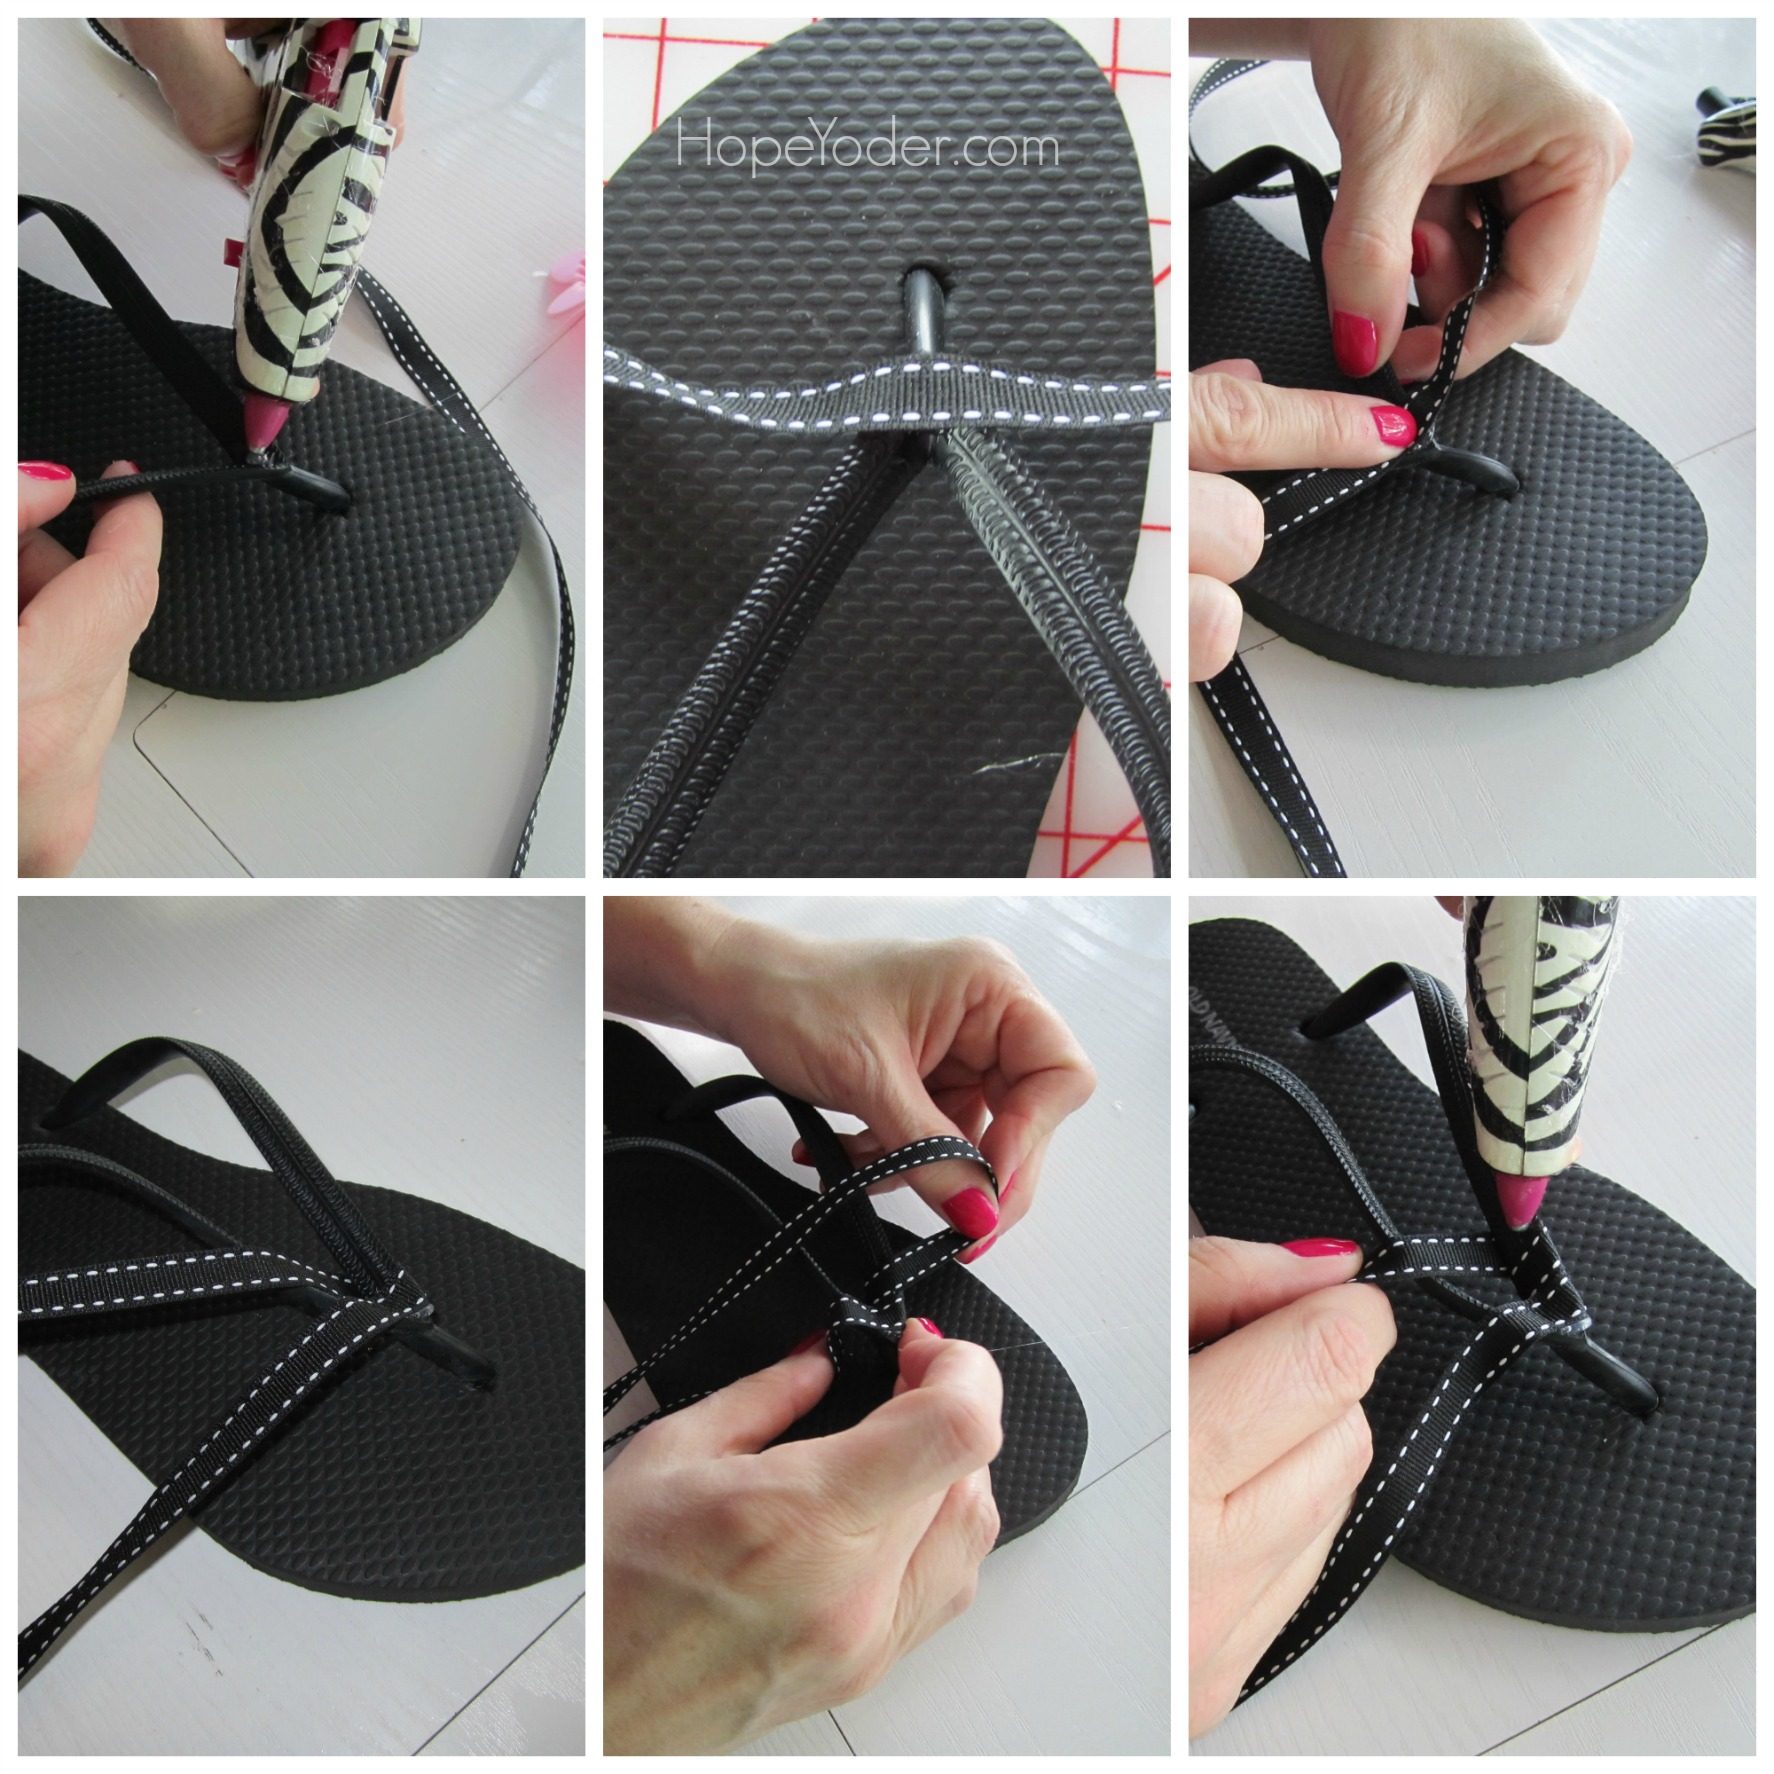 Collage of Flip Flops Being Decorated by Two Hands